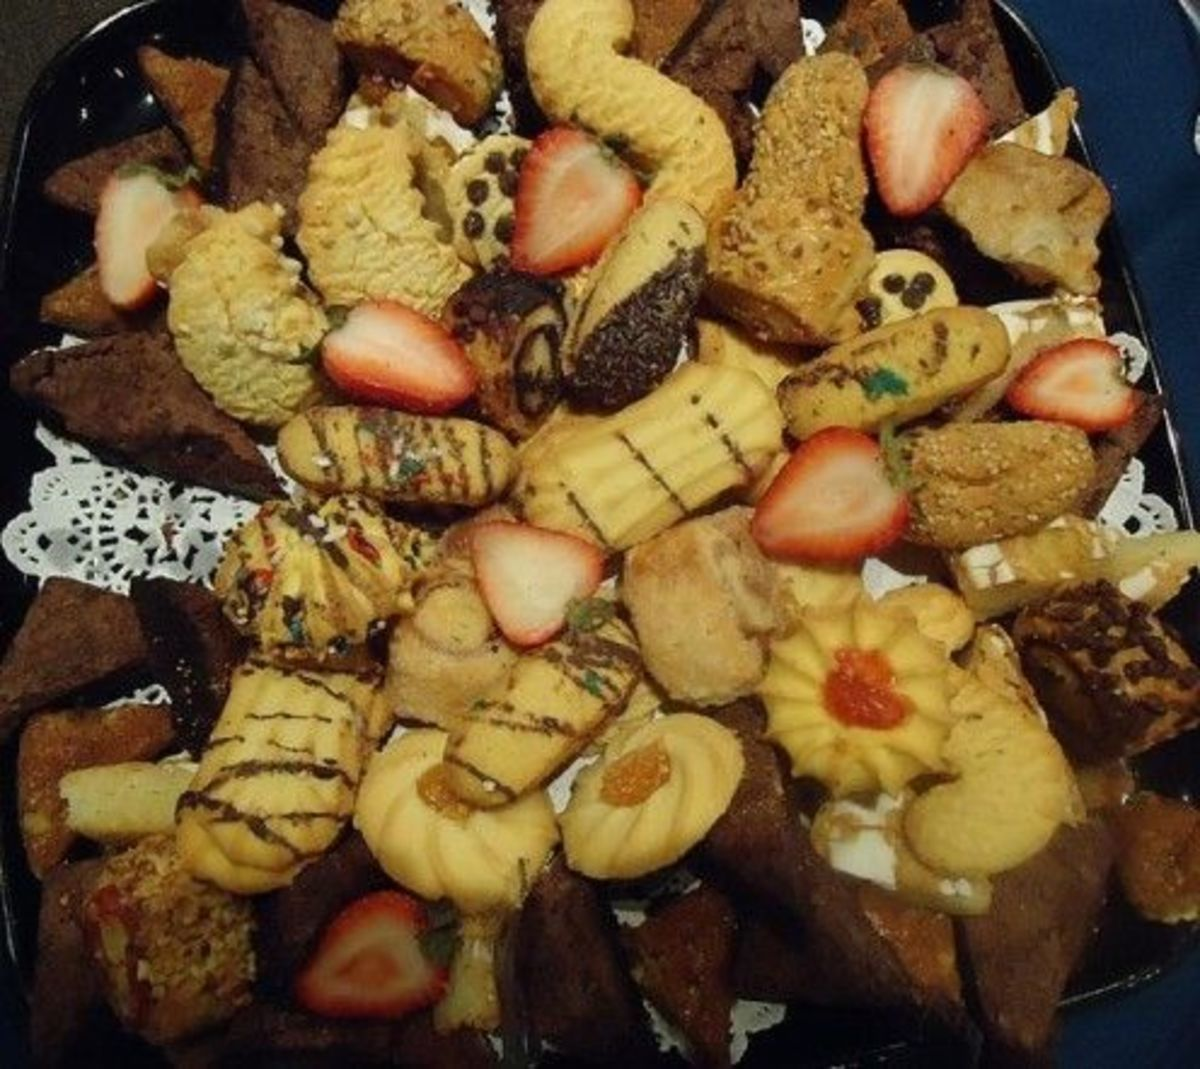 A variety of wedding cookies with strawberries.  Adding fresh fruit is a great way to enhance your wedding cookie table.